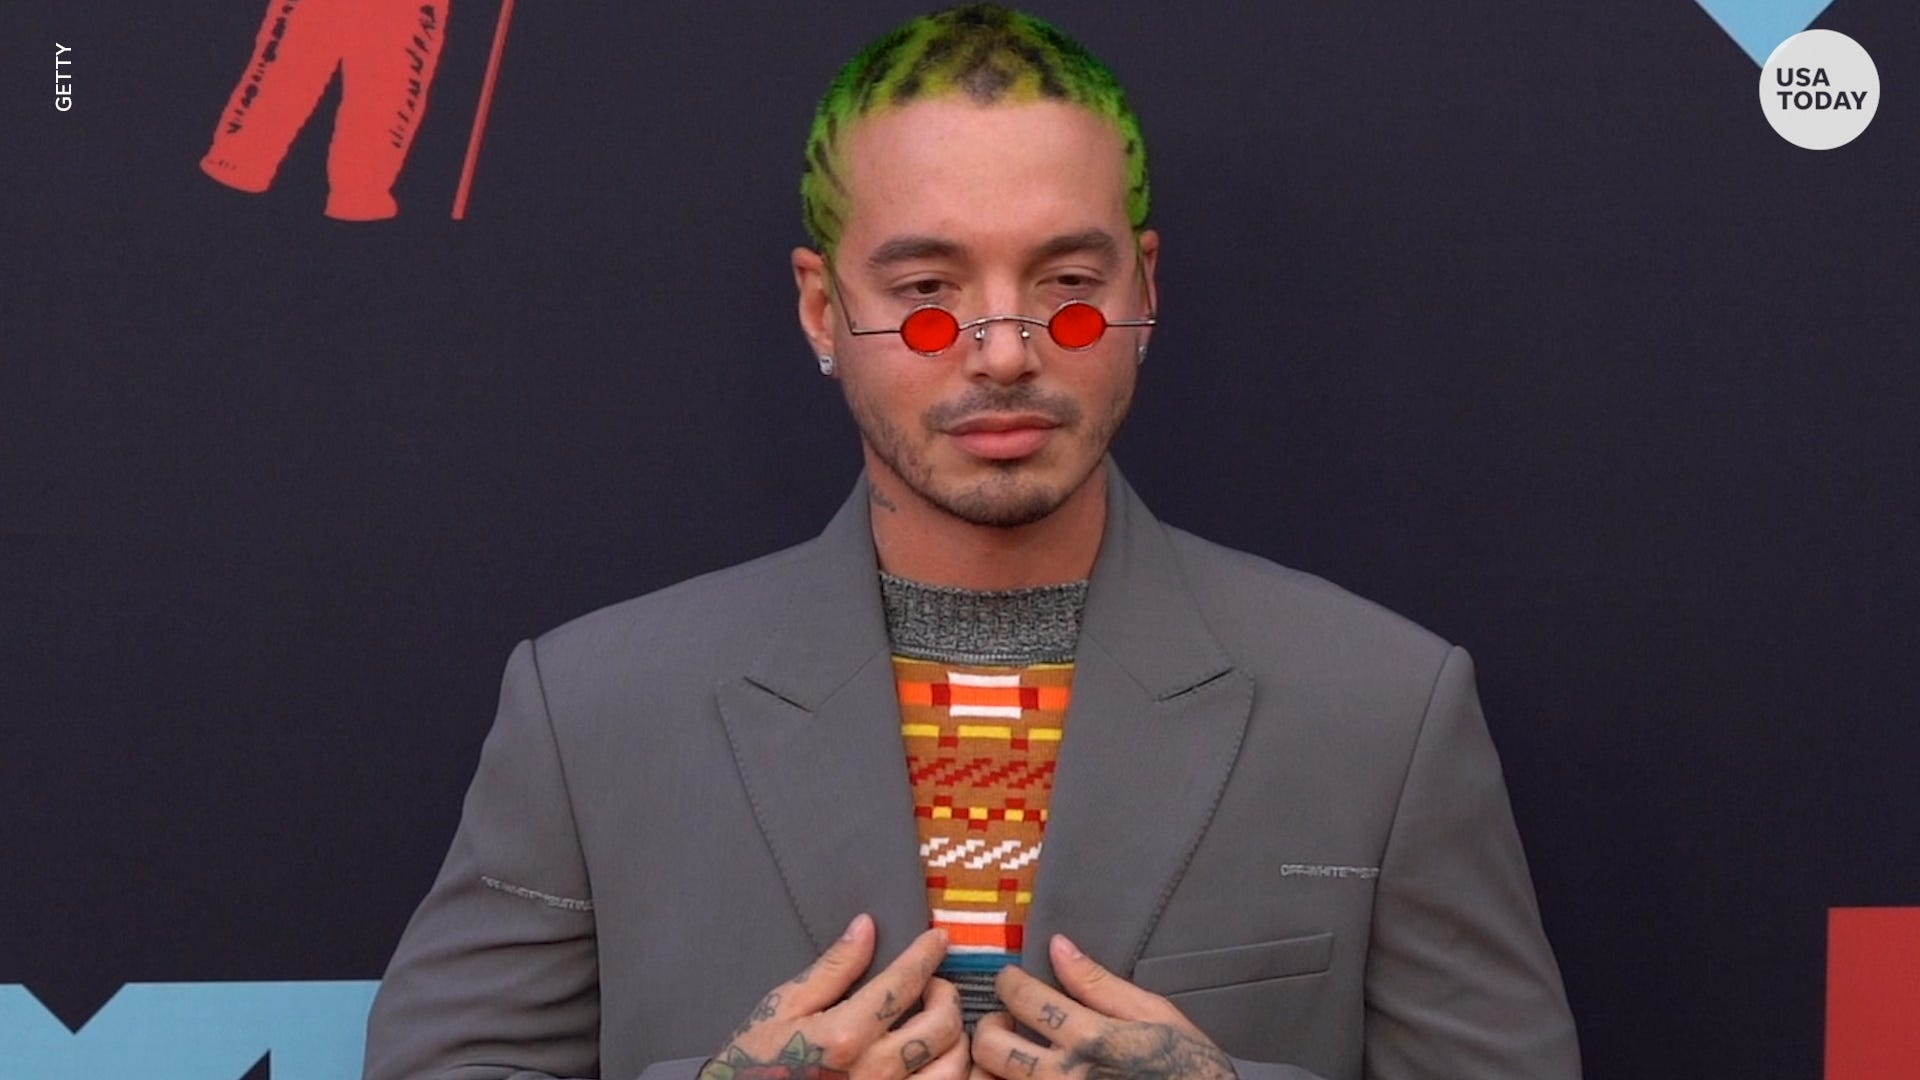 McDonald's introduces new celebrity collaboration meal with J Balvin